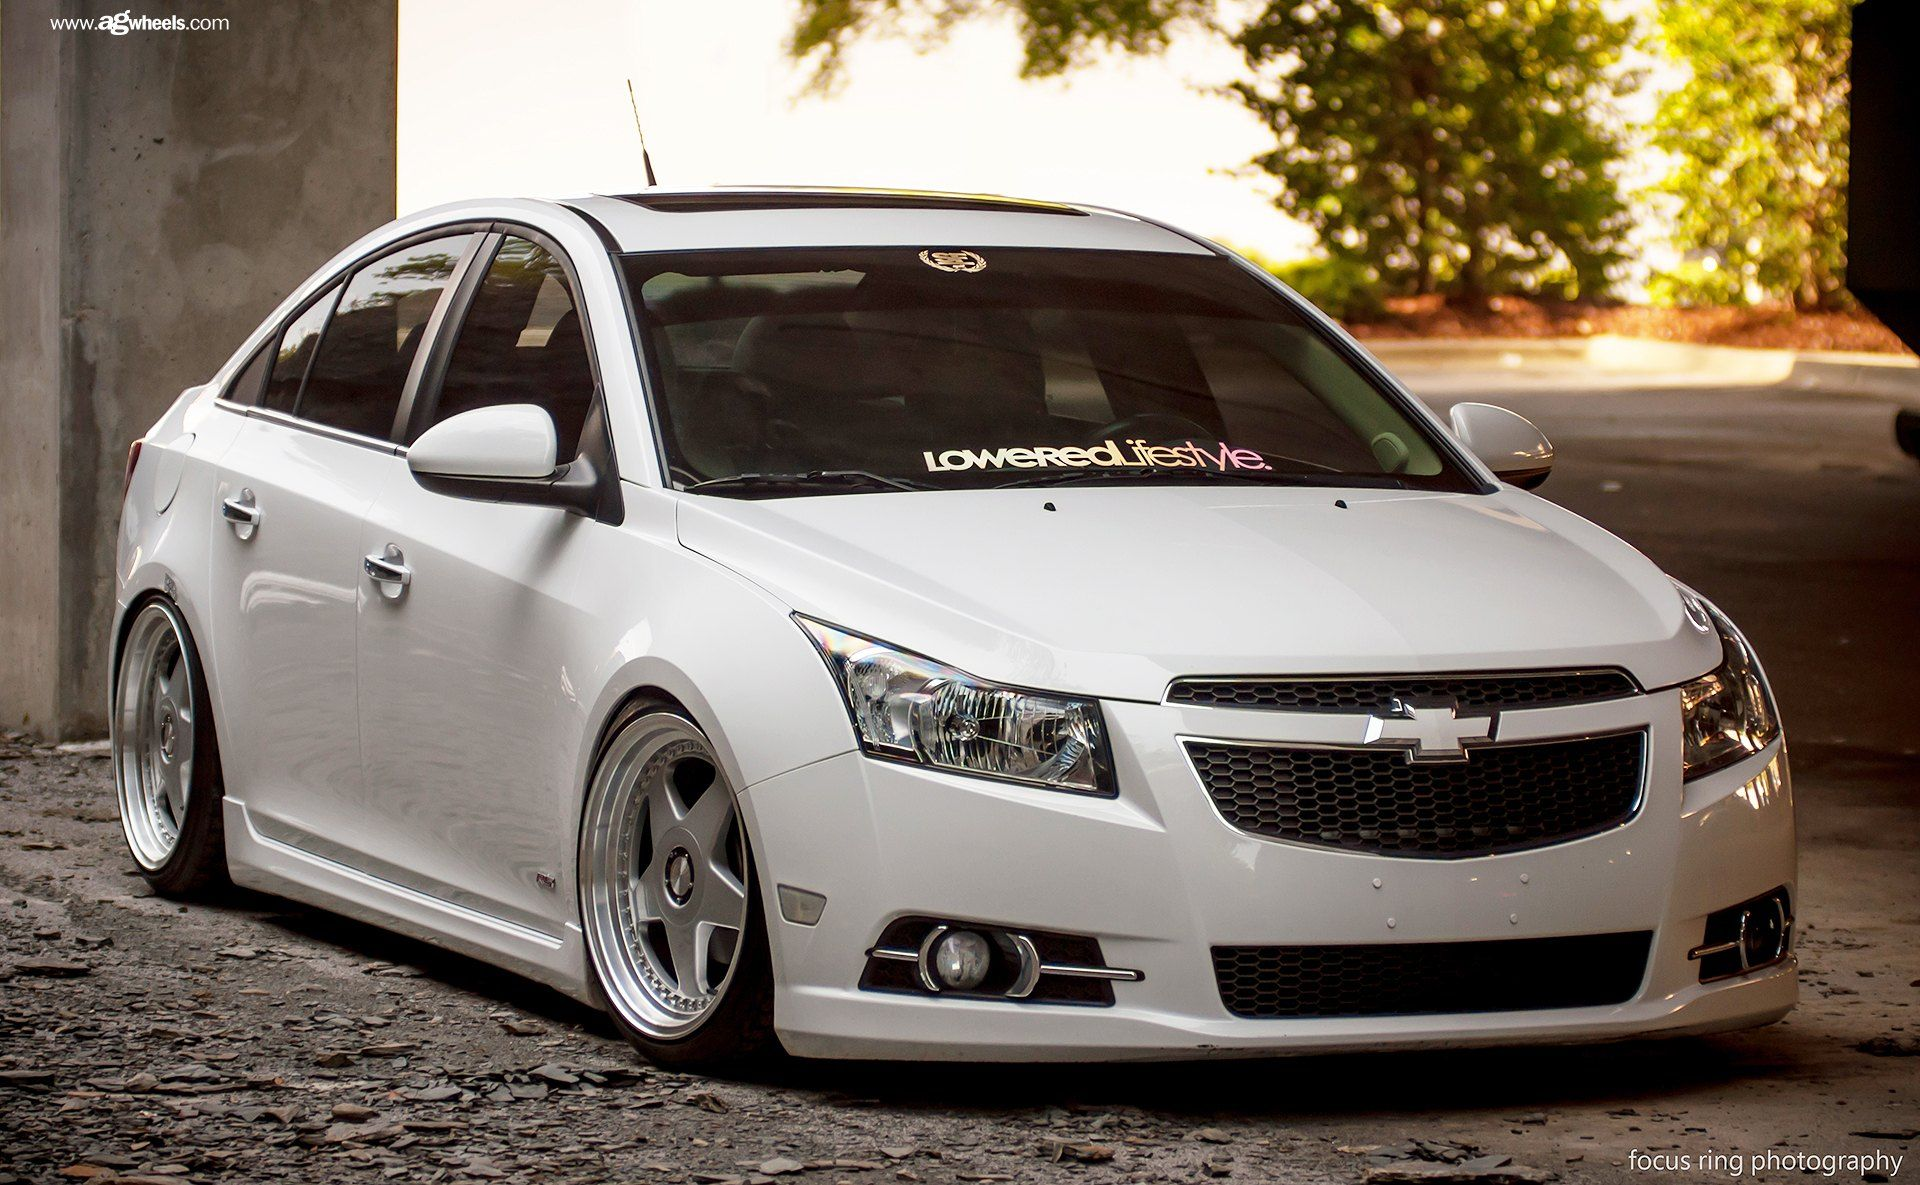 Stanced Chevy Cruze On Classic Style Custom Wheels Chevy Cruze Cruze Chevy Cruze Custom